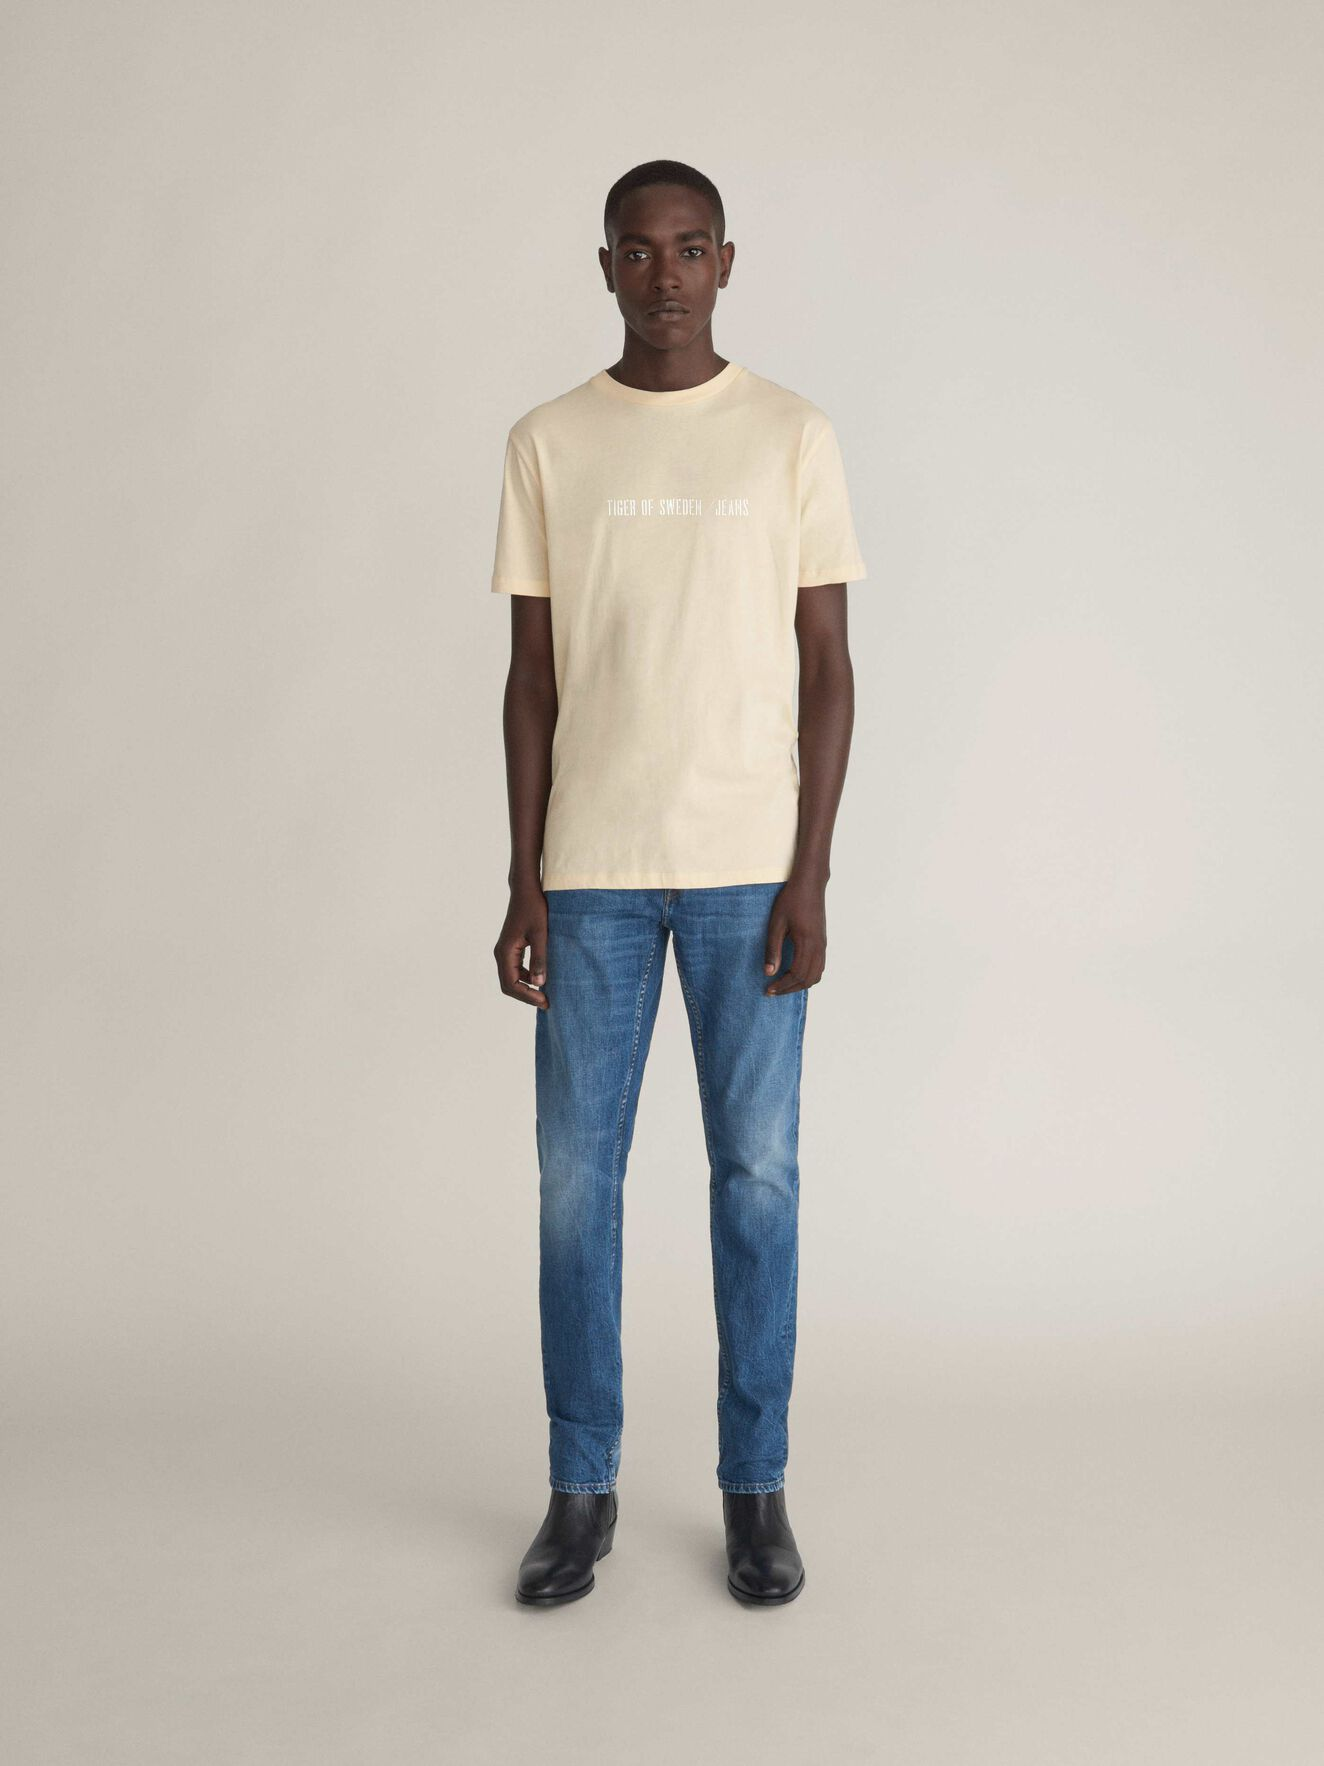 Fleek T-Shirt in Curd from Tiger of Sweden